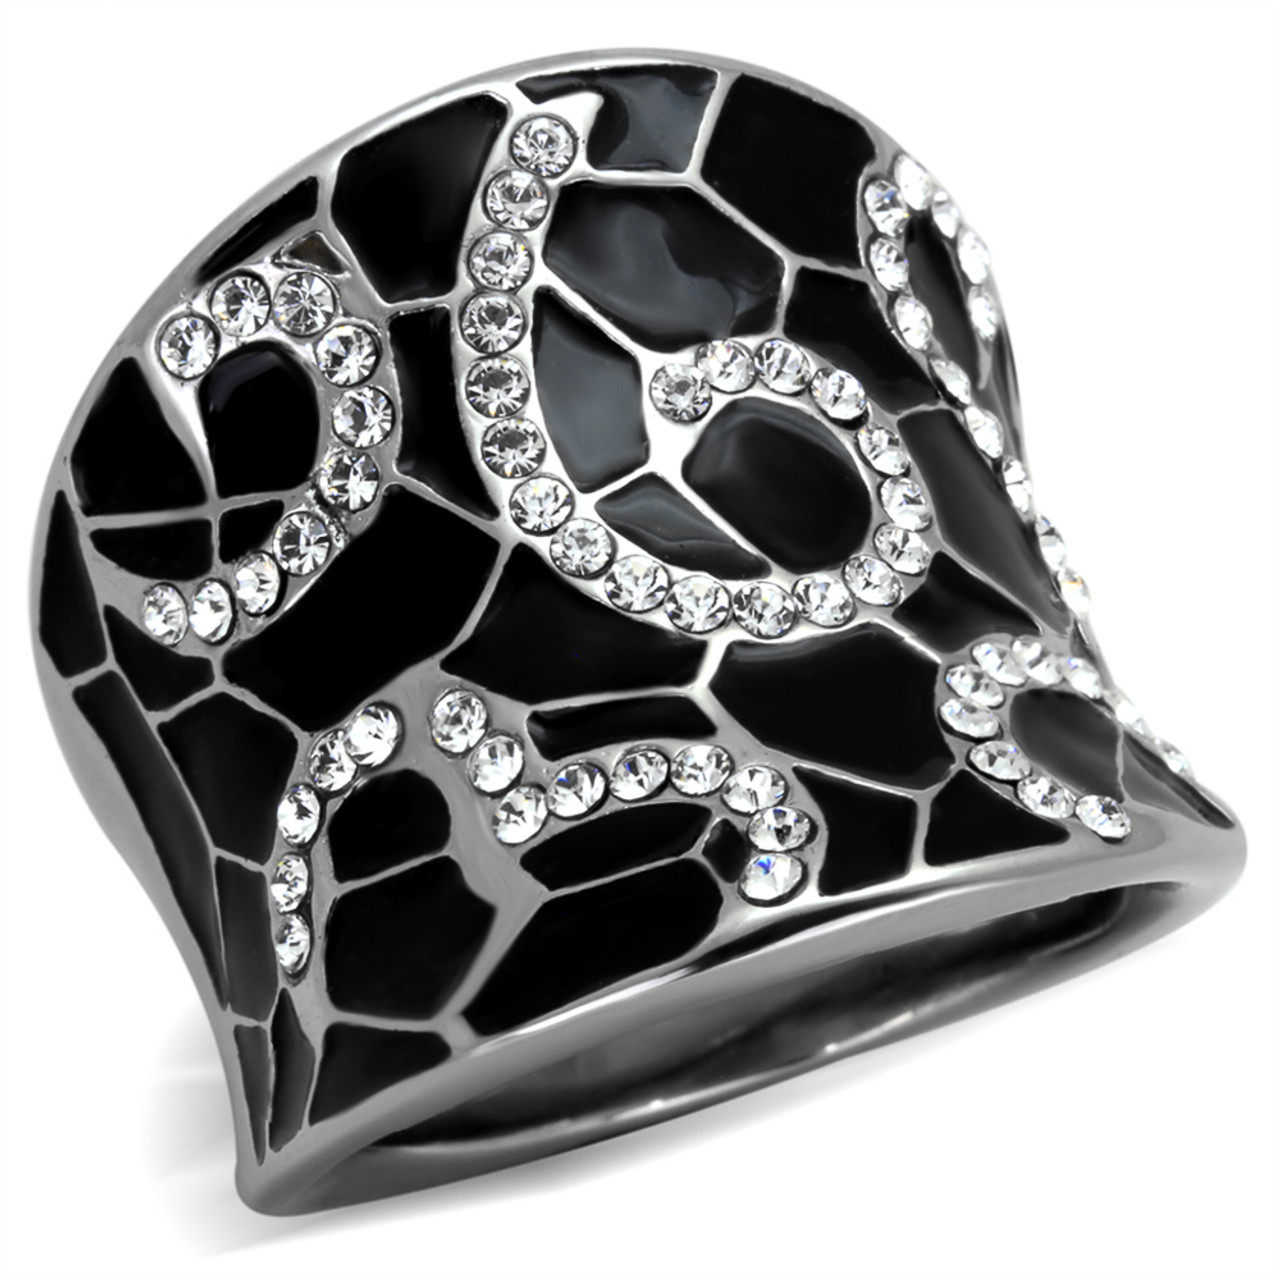 MJS Women/'s Black Stainless Steel Black Crystal Band Fashion Ring Size 5-10